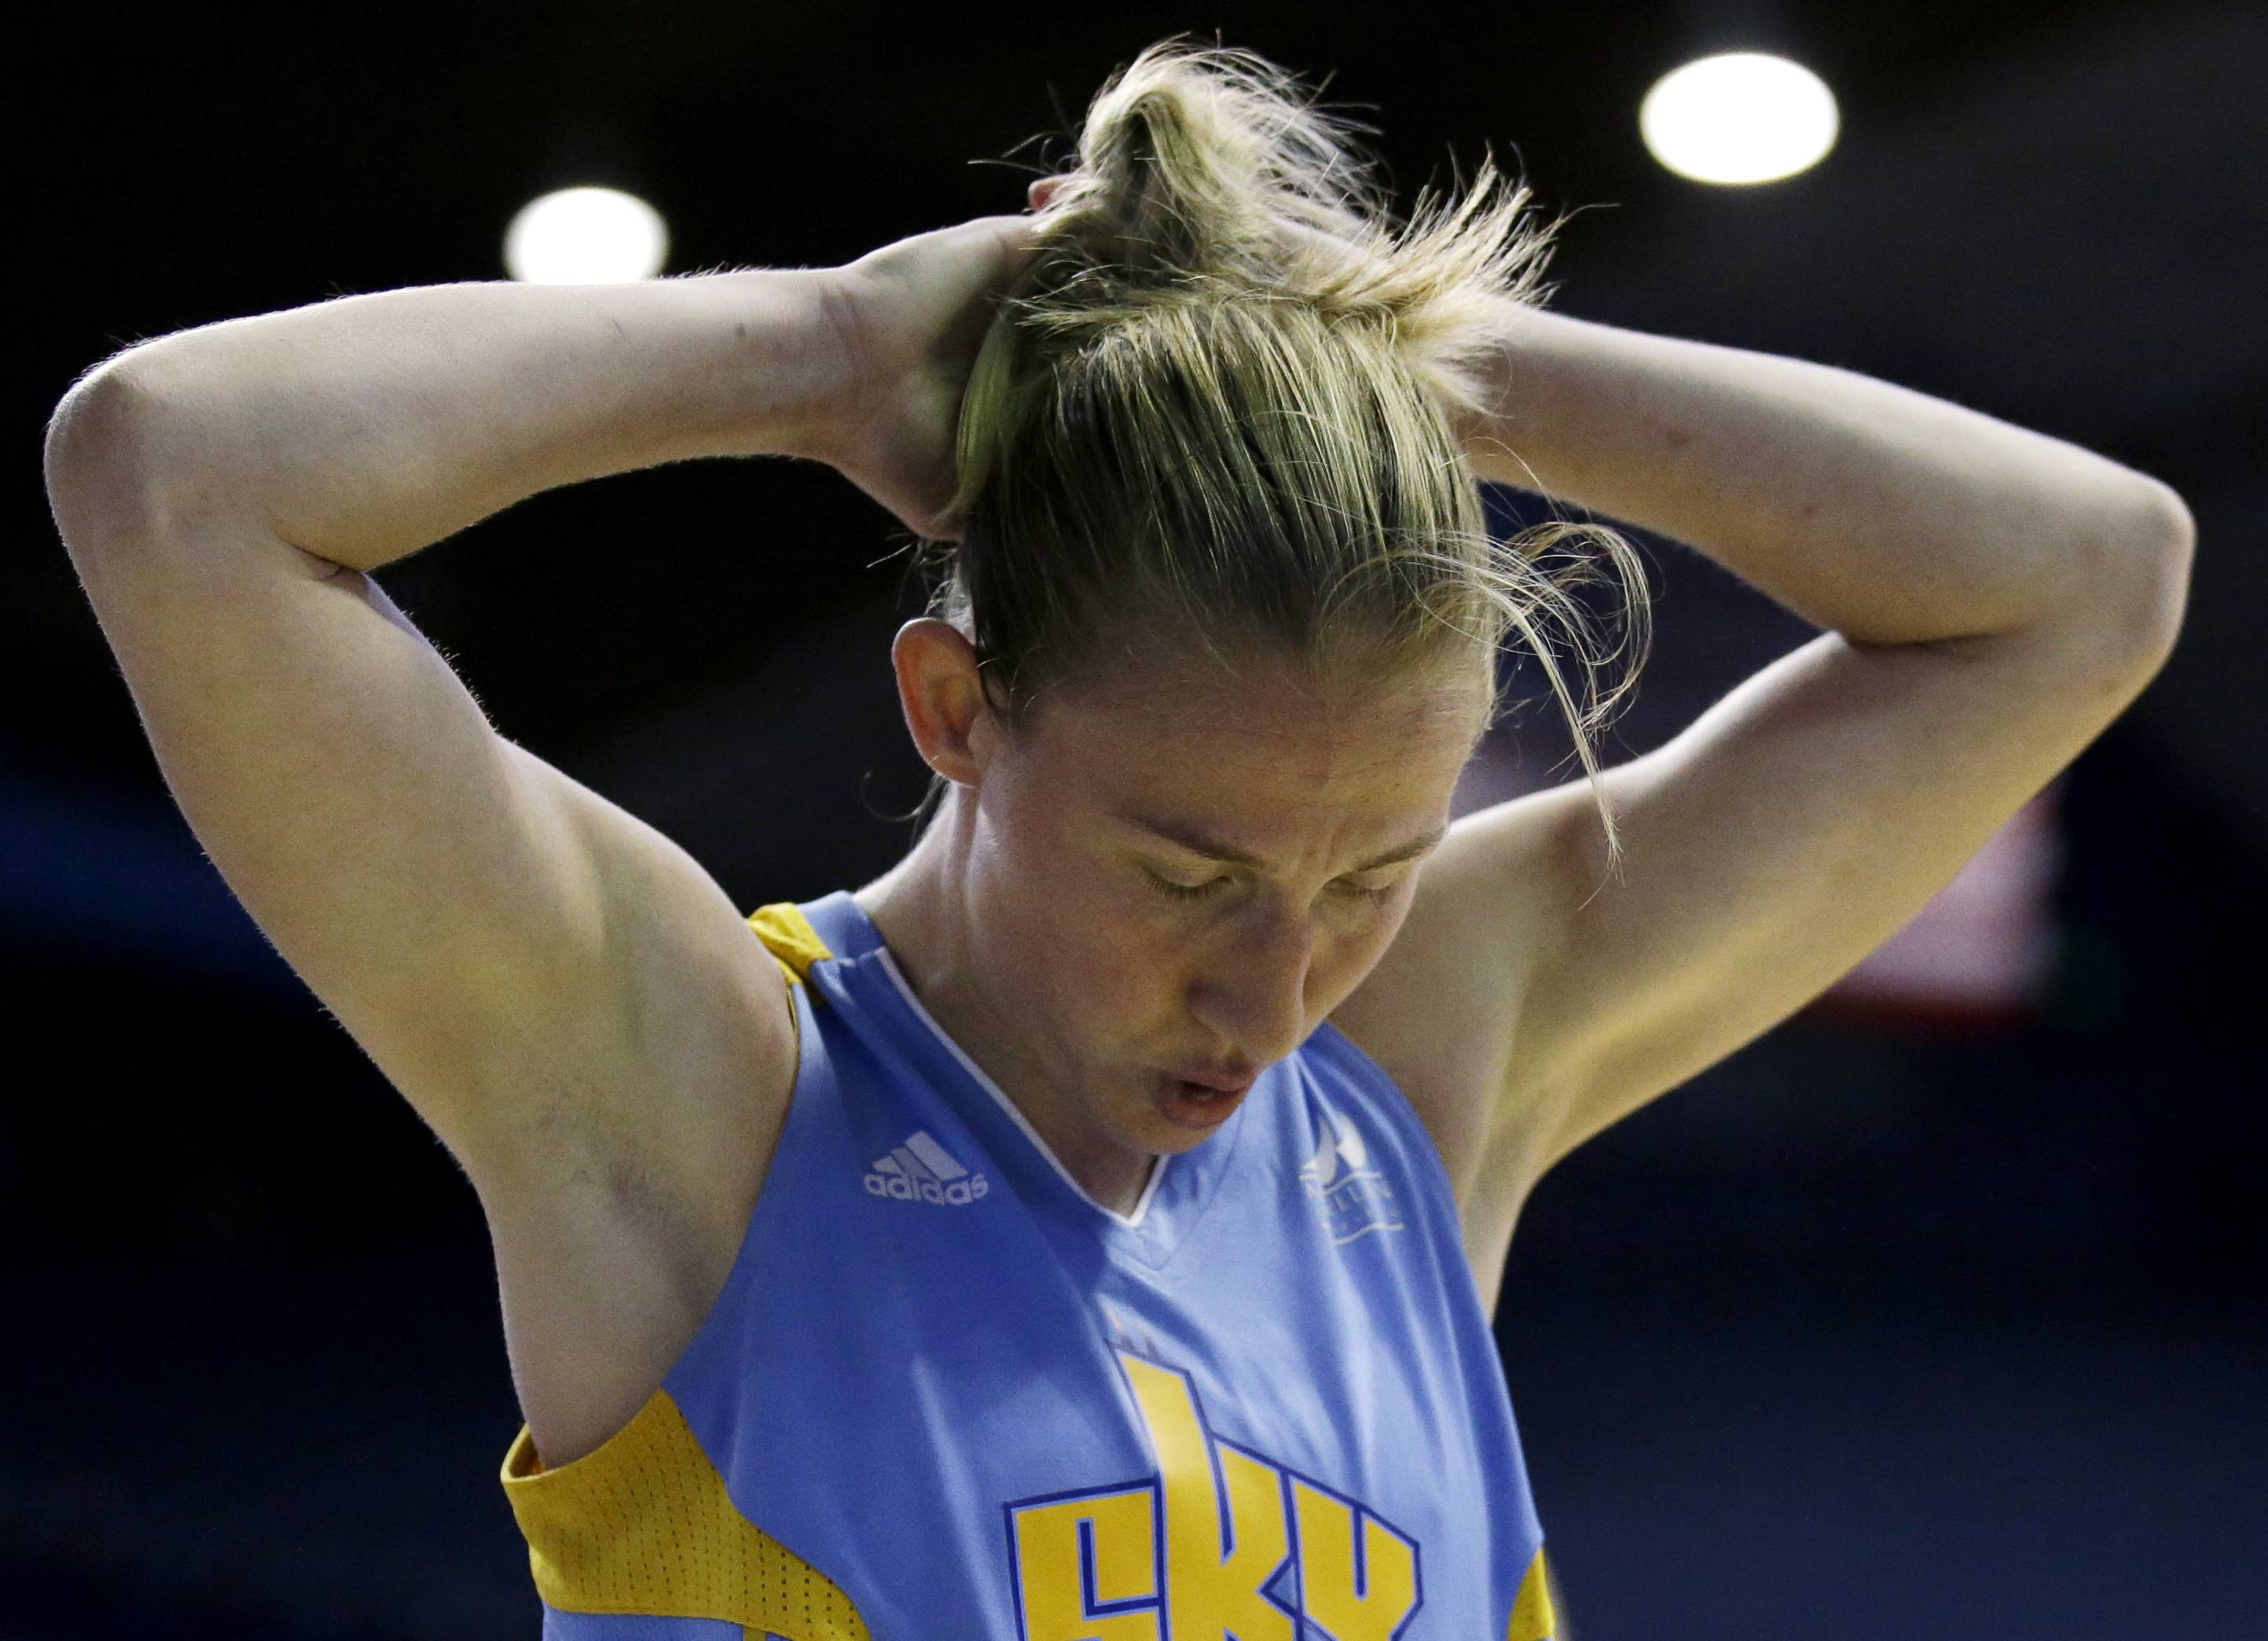 Chicago Sky guard Courtney Vandersloot reacts to a foul called on her during the second half of a WNBA basketball game Dallas Wings, Wednesday, Aug. 30, 2017, in Rosemont, Ill. Tpphe Wings won 99-96.